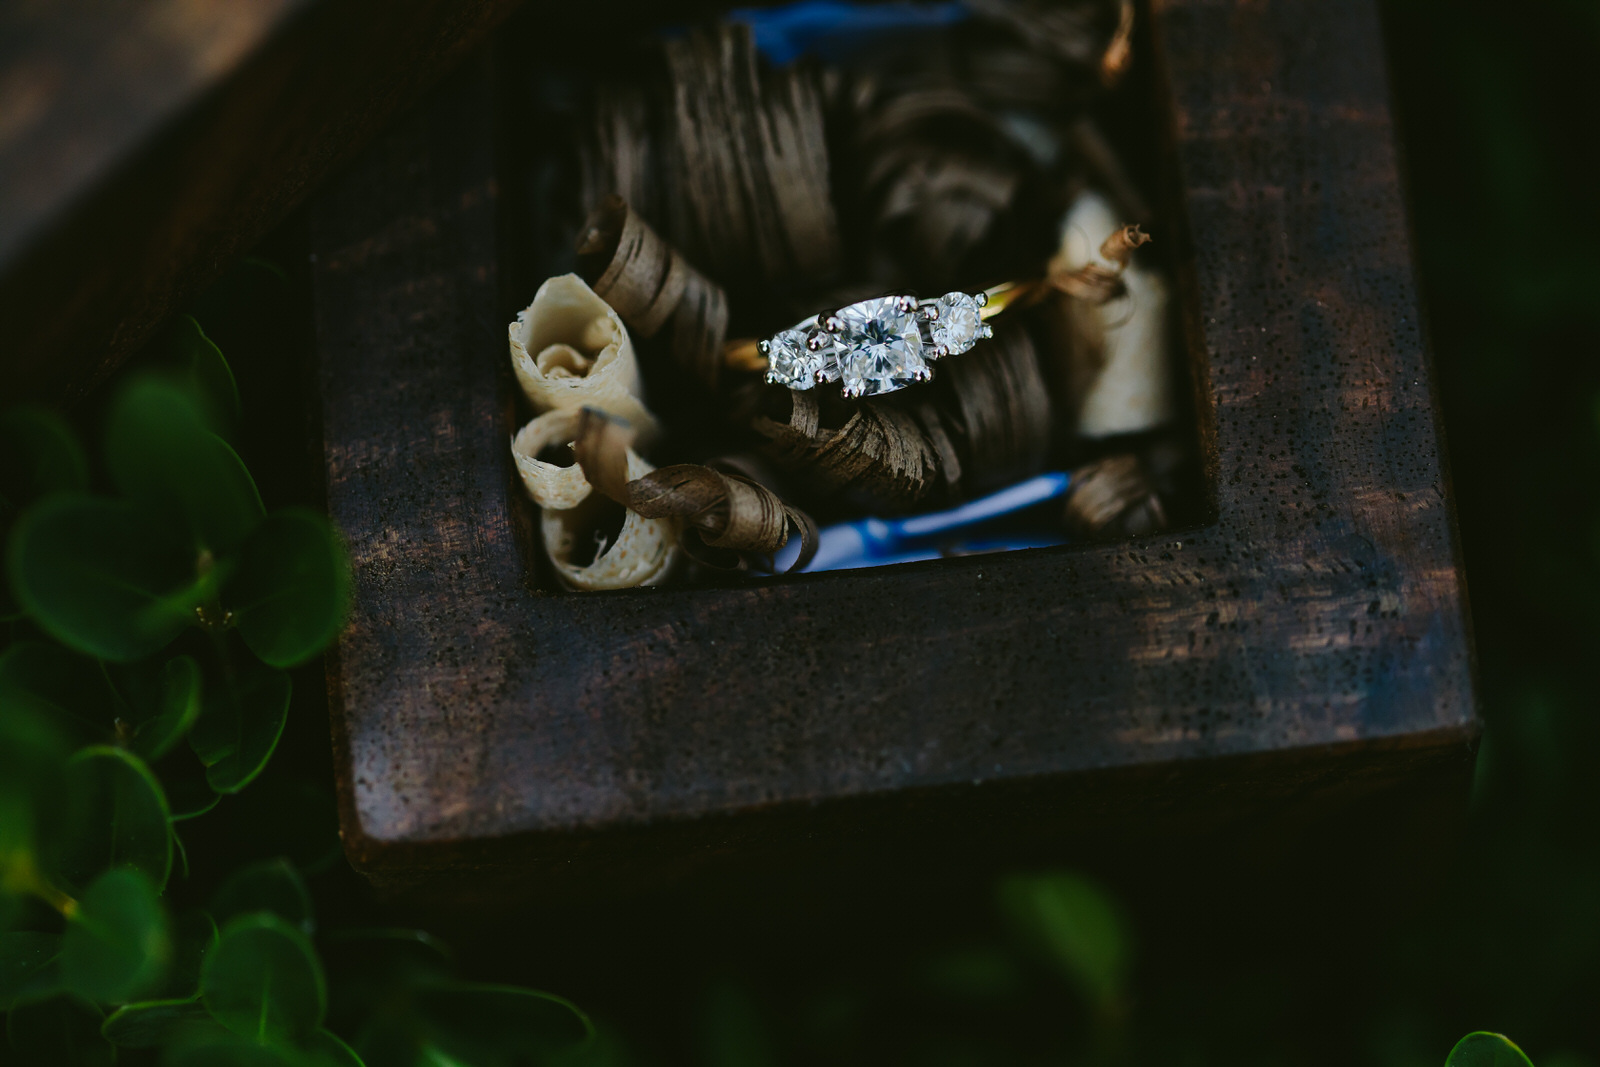 popped_the_question_proposal_photography_ring_tiny_house_photo.jpg